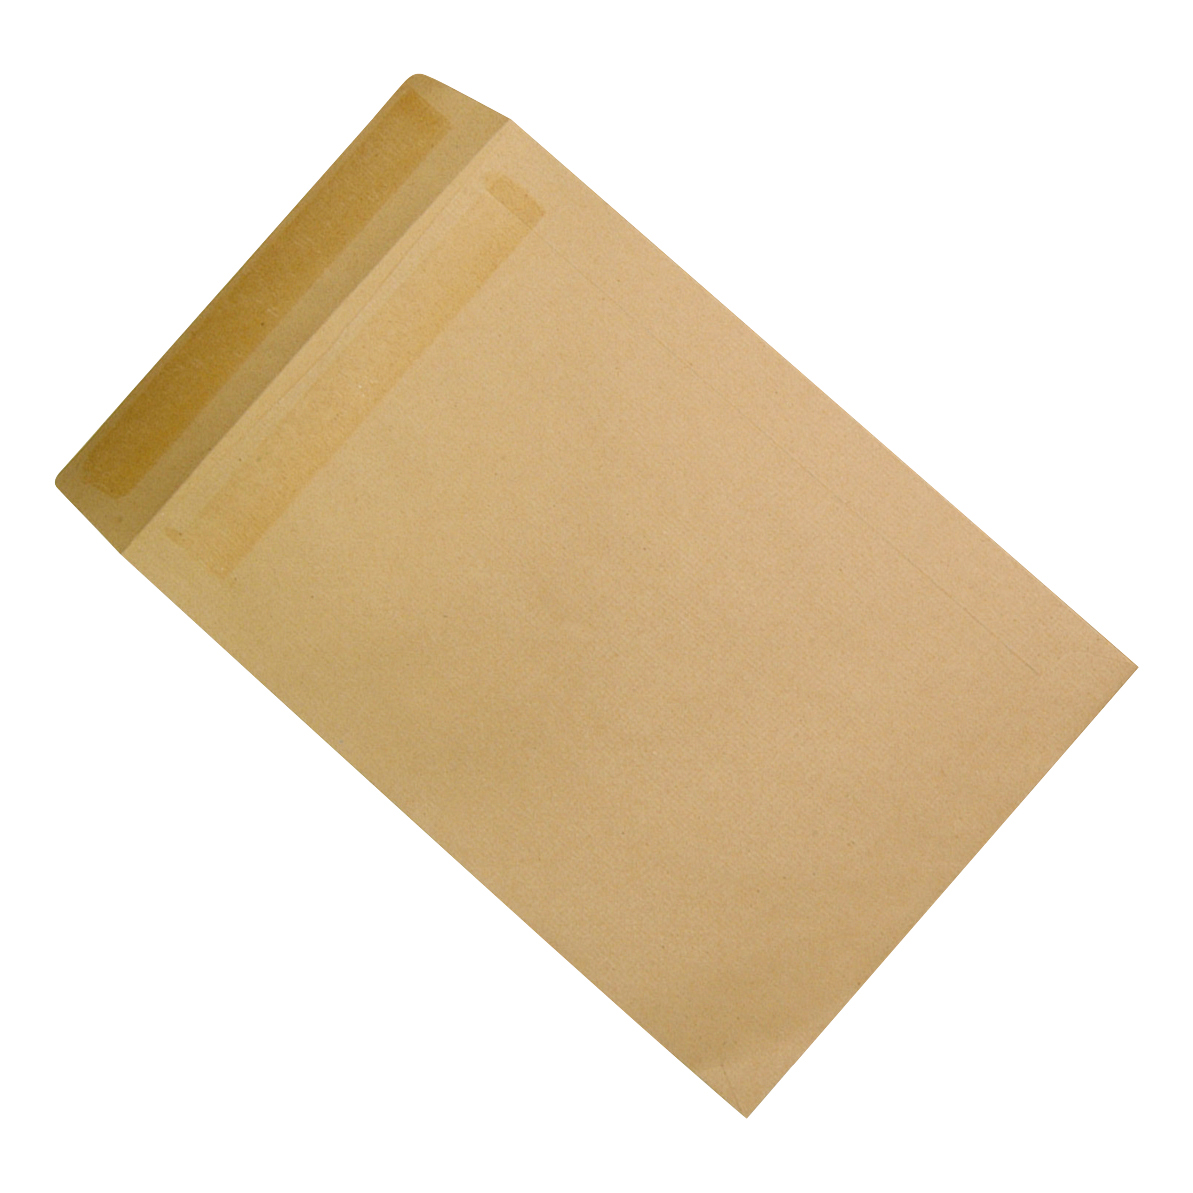 5 Star Office Envelopes Recycled 381x254mm Pocket Peel and Seal 115gsm Manilla [Pack 250]